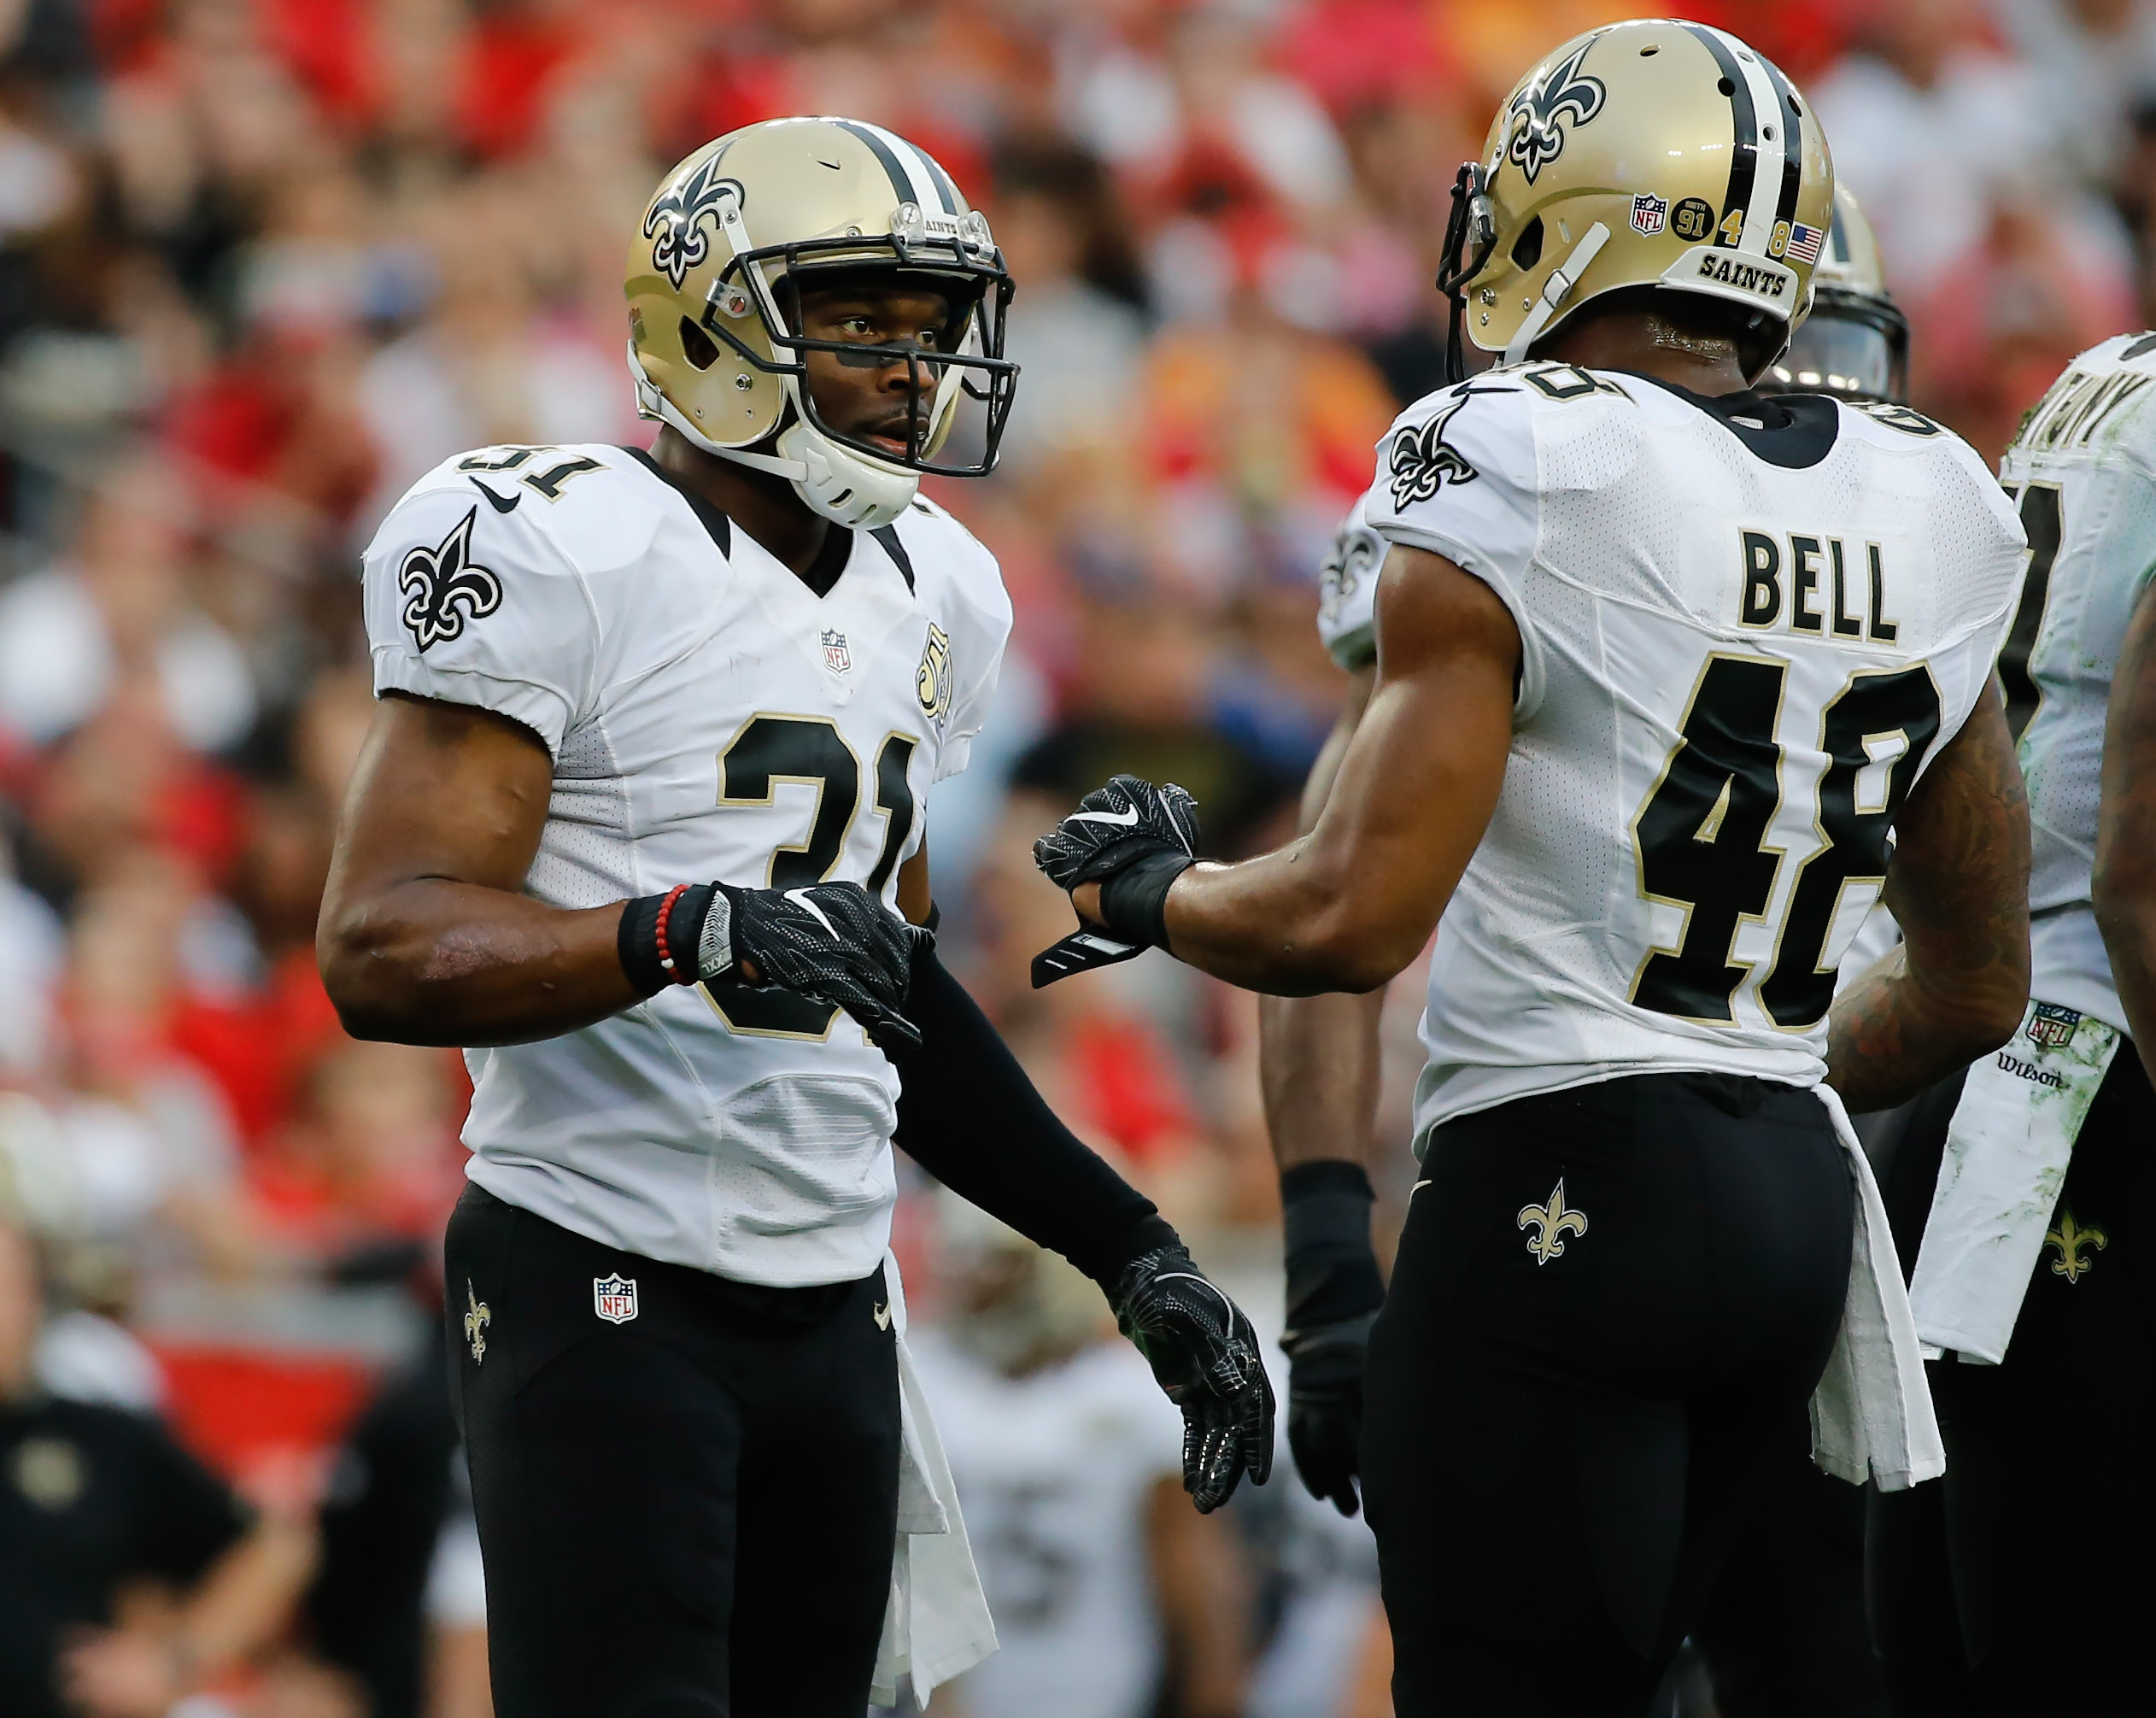 9750783-nfl-new-orleans-saints-at-tampa-bay-buccaneers